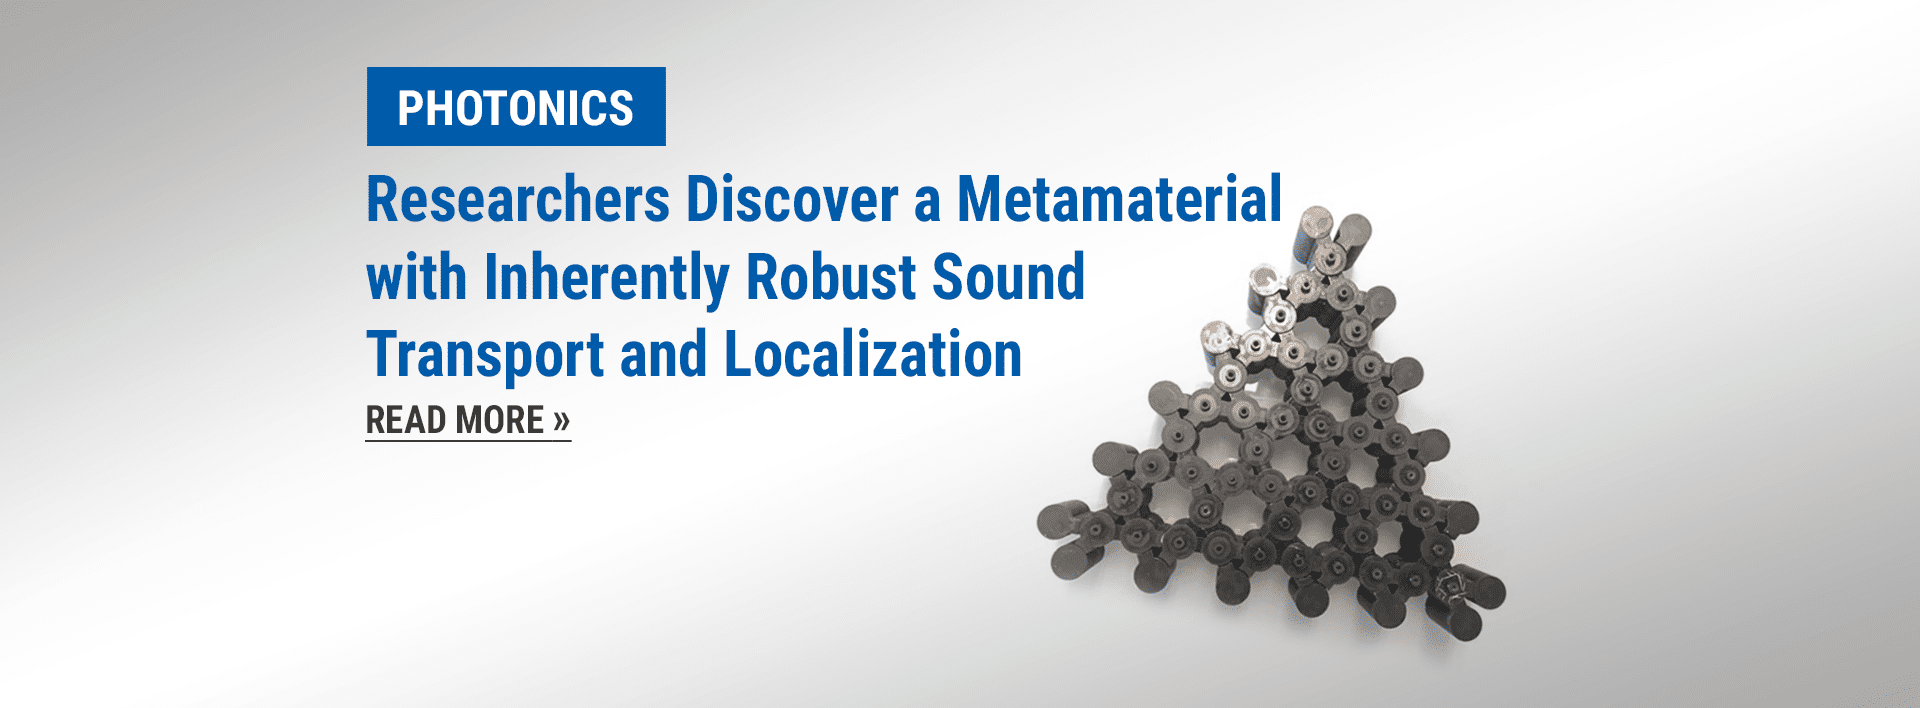 Photonics news: Researchers Discover a Metamaterial with Inherently Robust Sound Transport and Localization